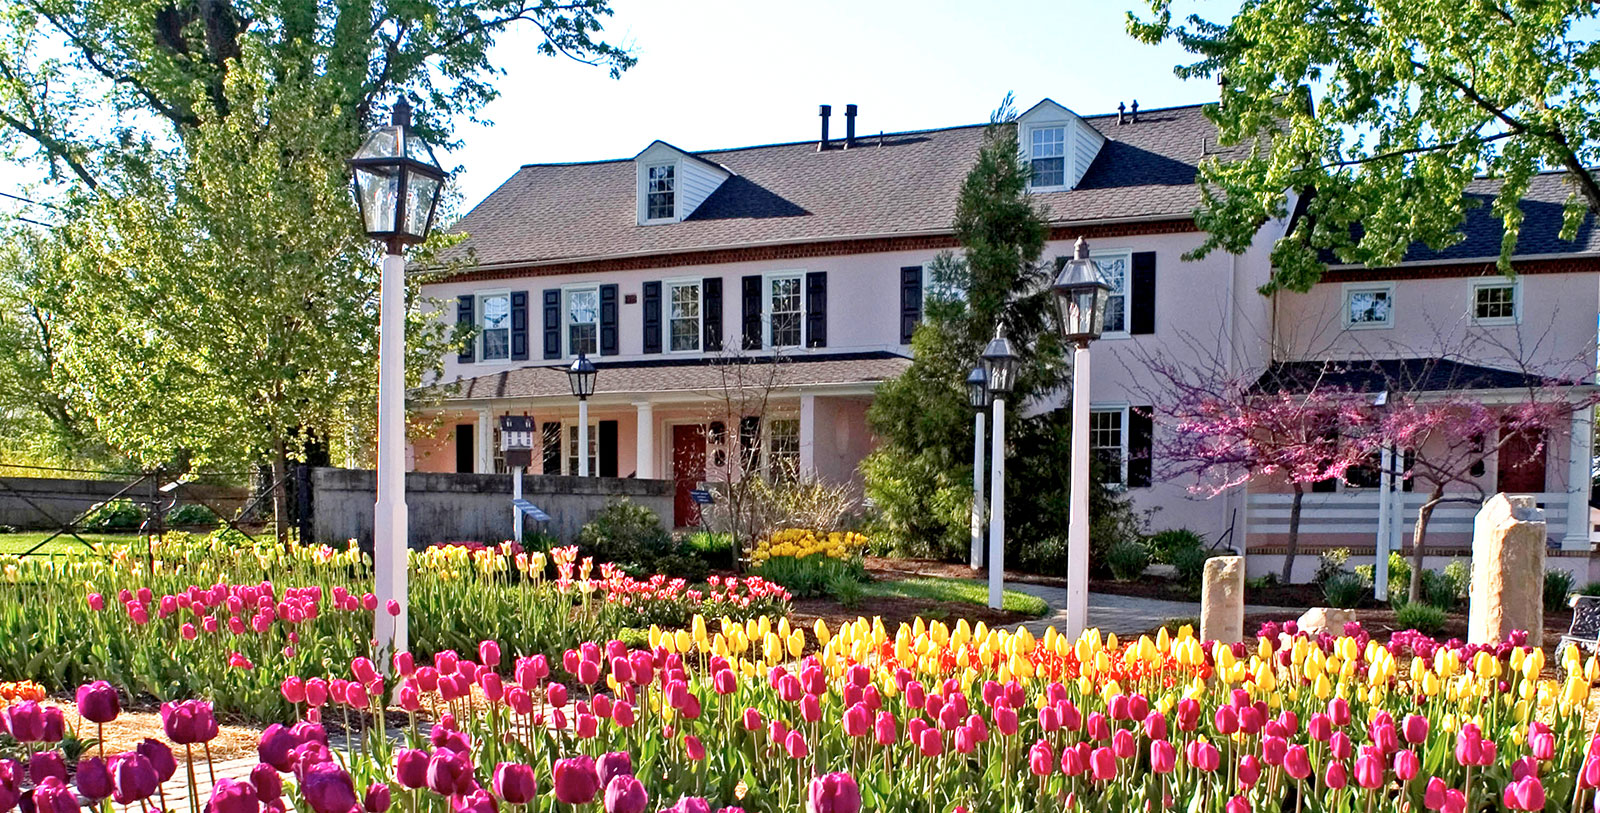 Image of Garden The Inn at Montchanin Village, 1799, Member of Historic Hotels of America, in Montchanin, Delaware